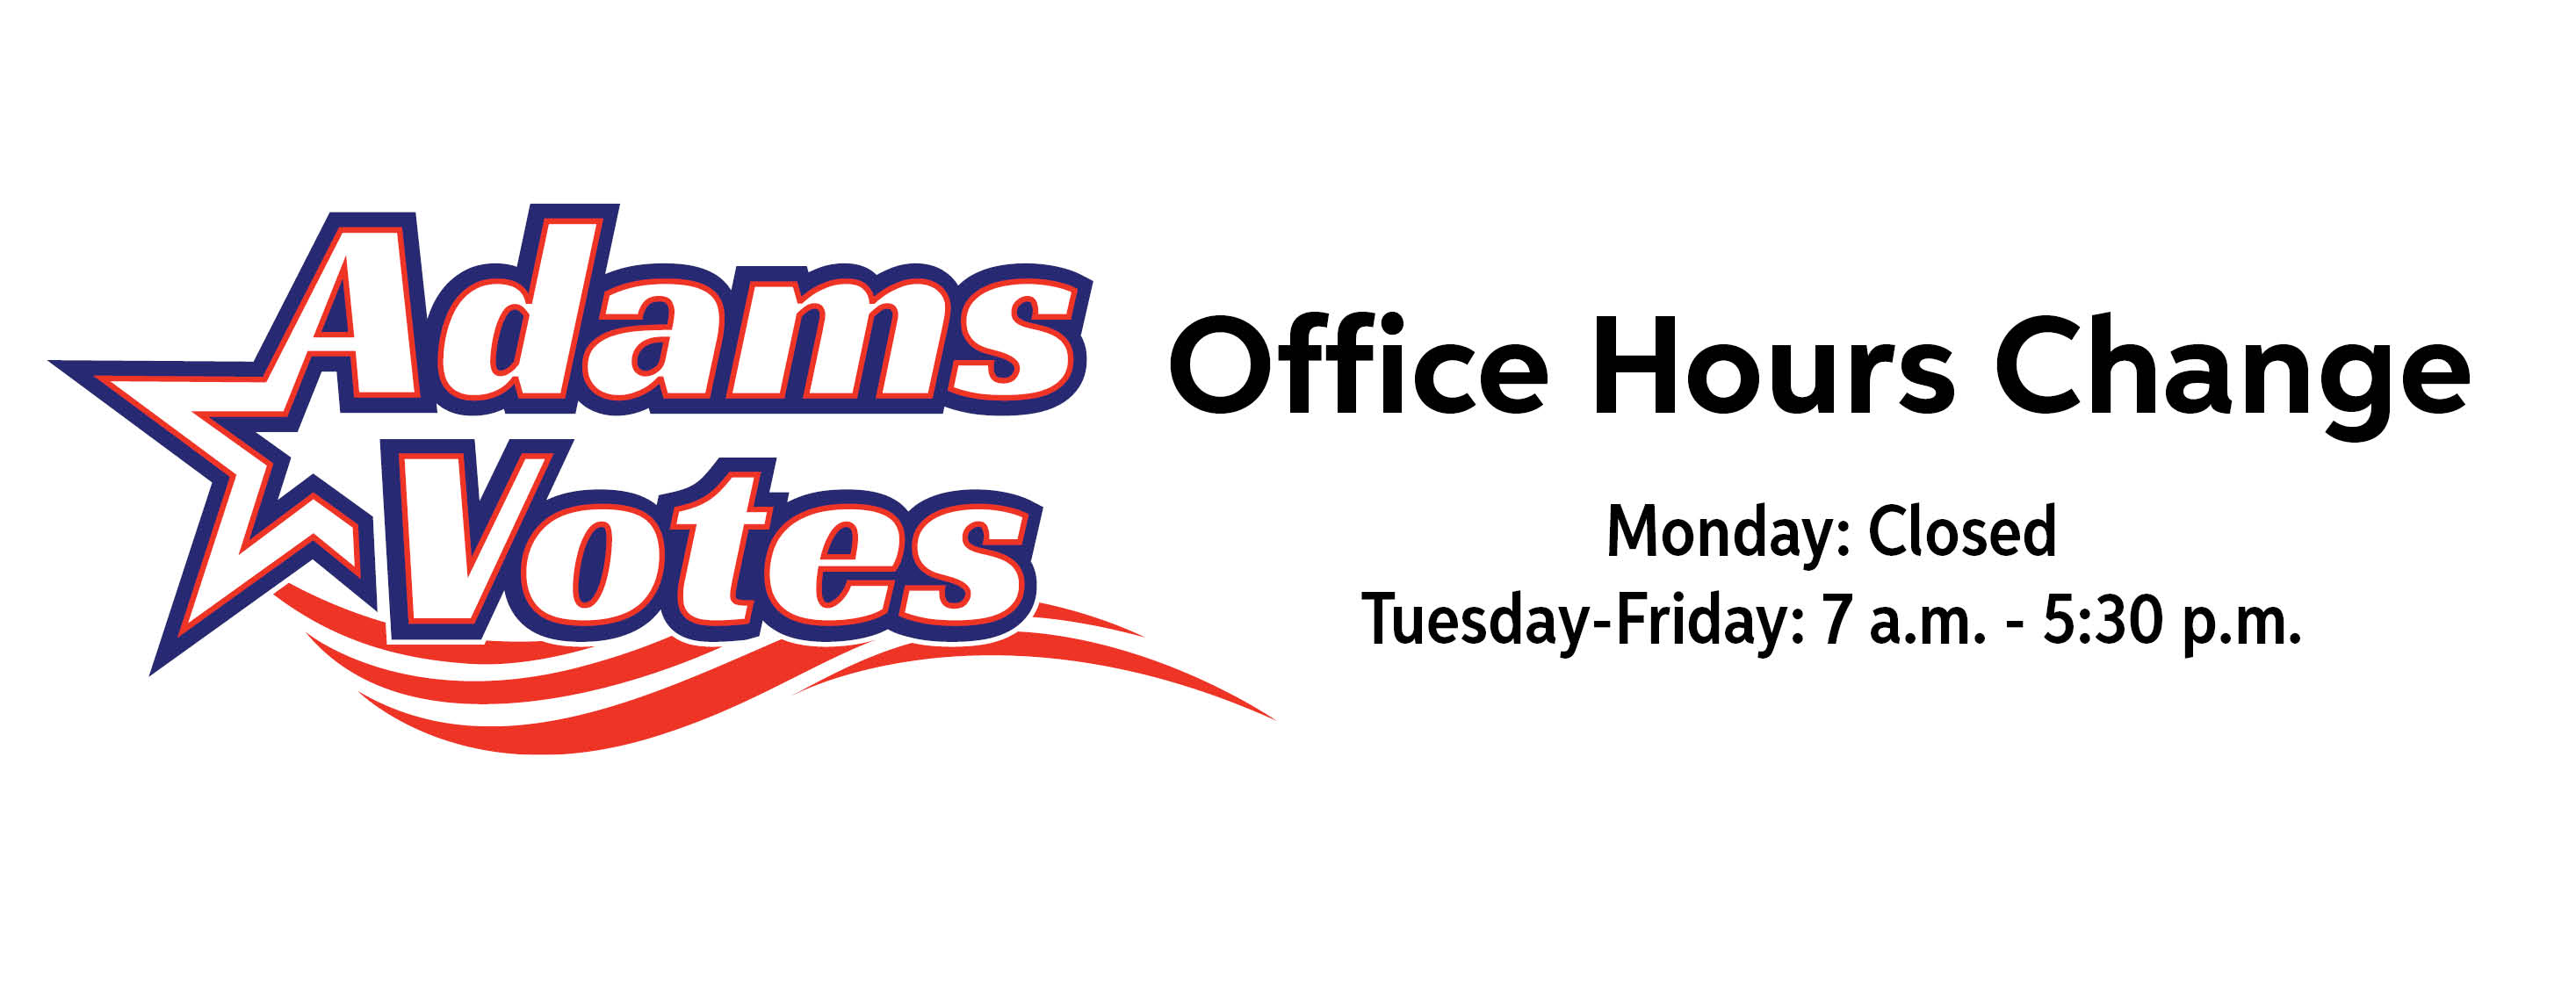 Office Hours Change